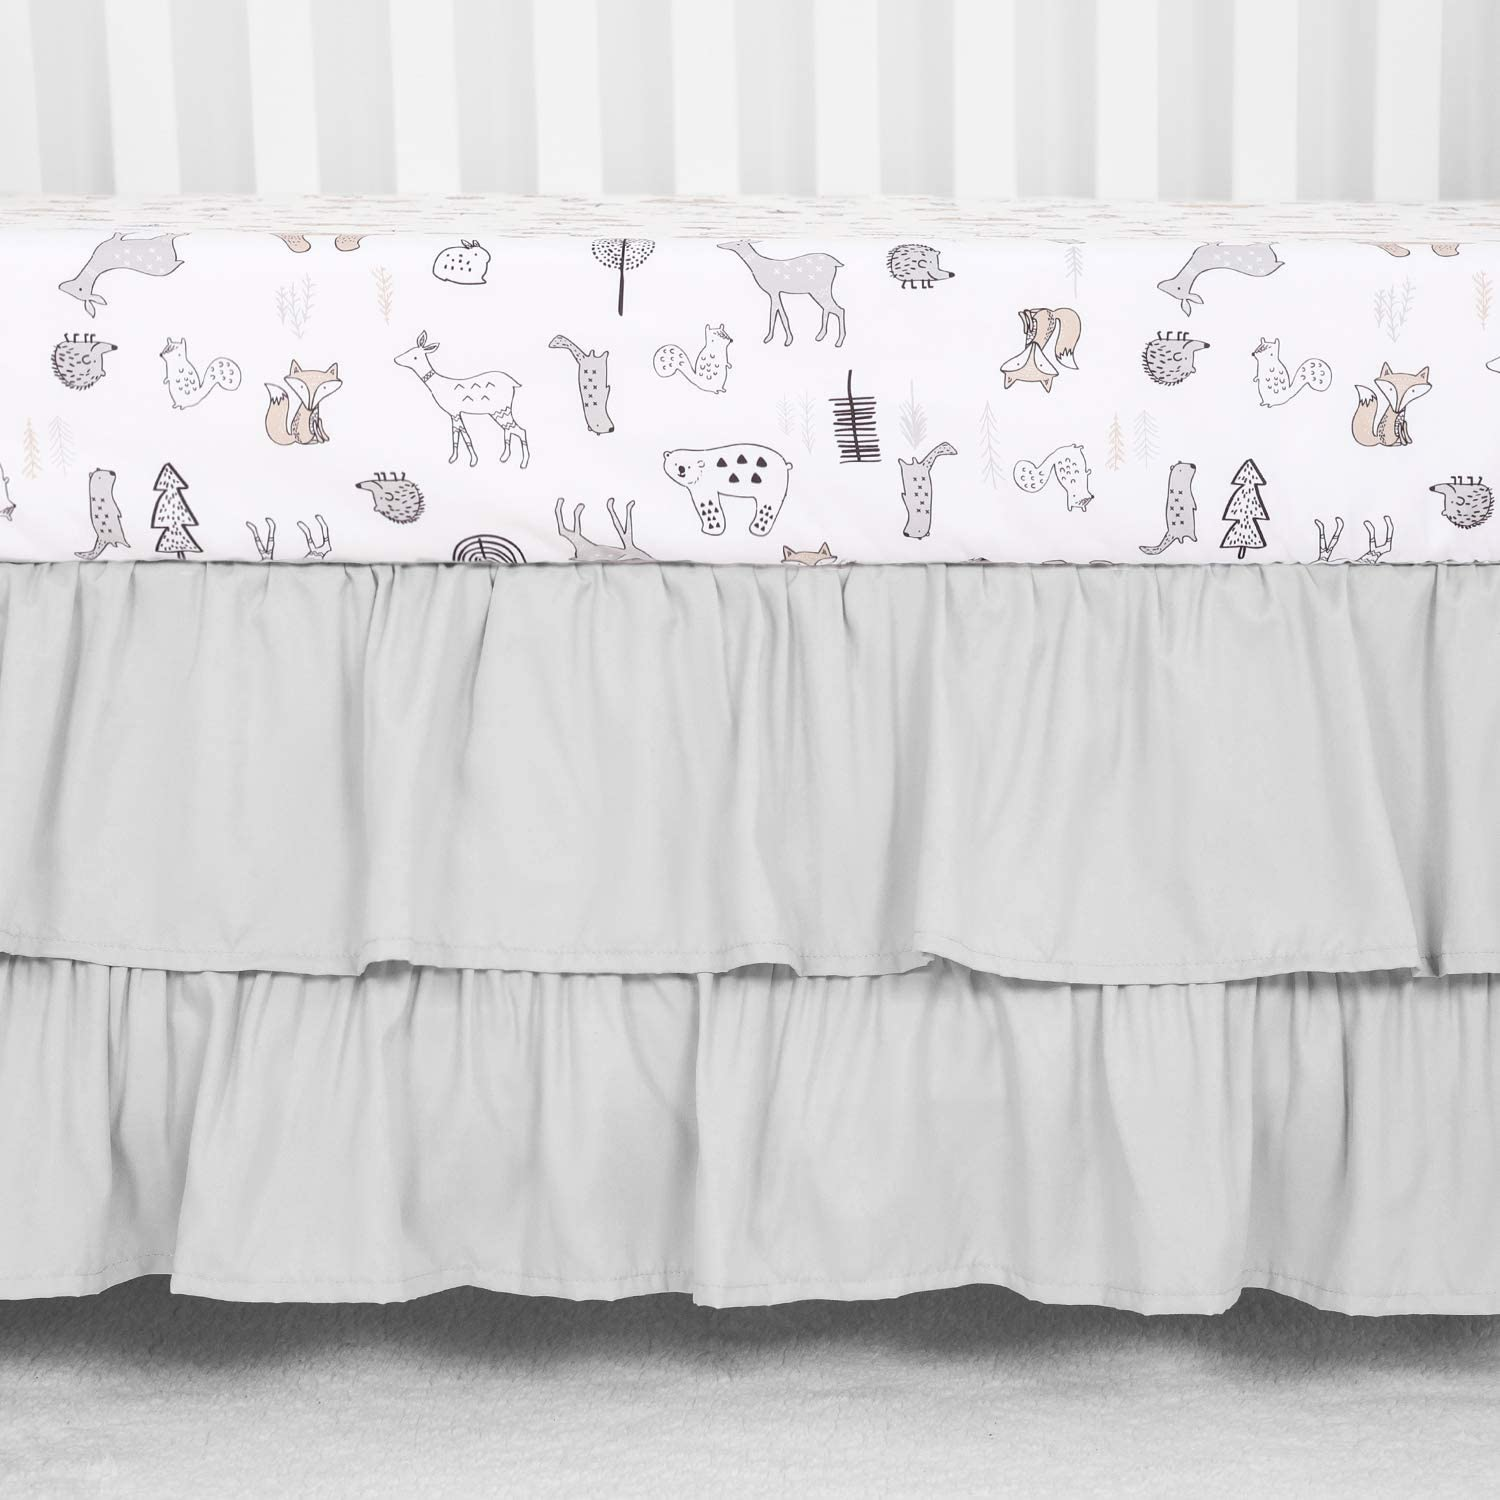 TILLYOU Crib Skirt Store Dust Ruffle Layer Microfiber Double Manufacturer direct delivery Nursery